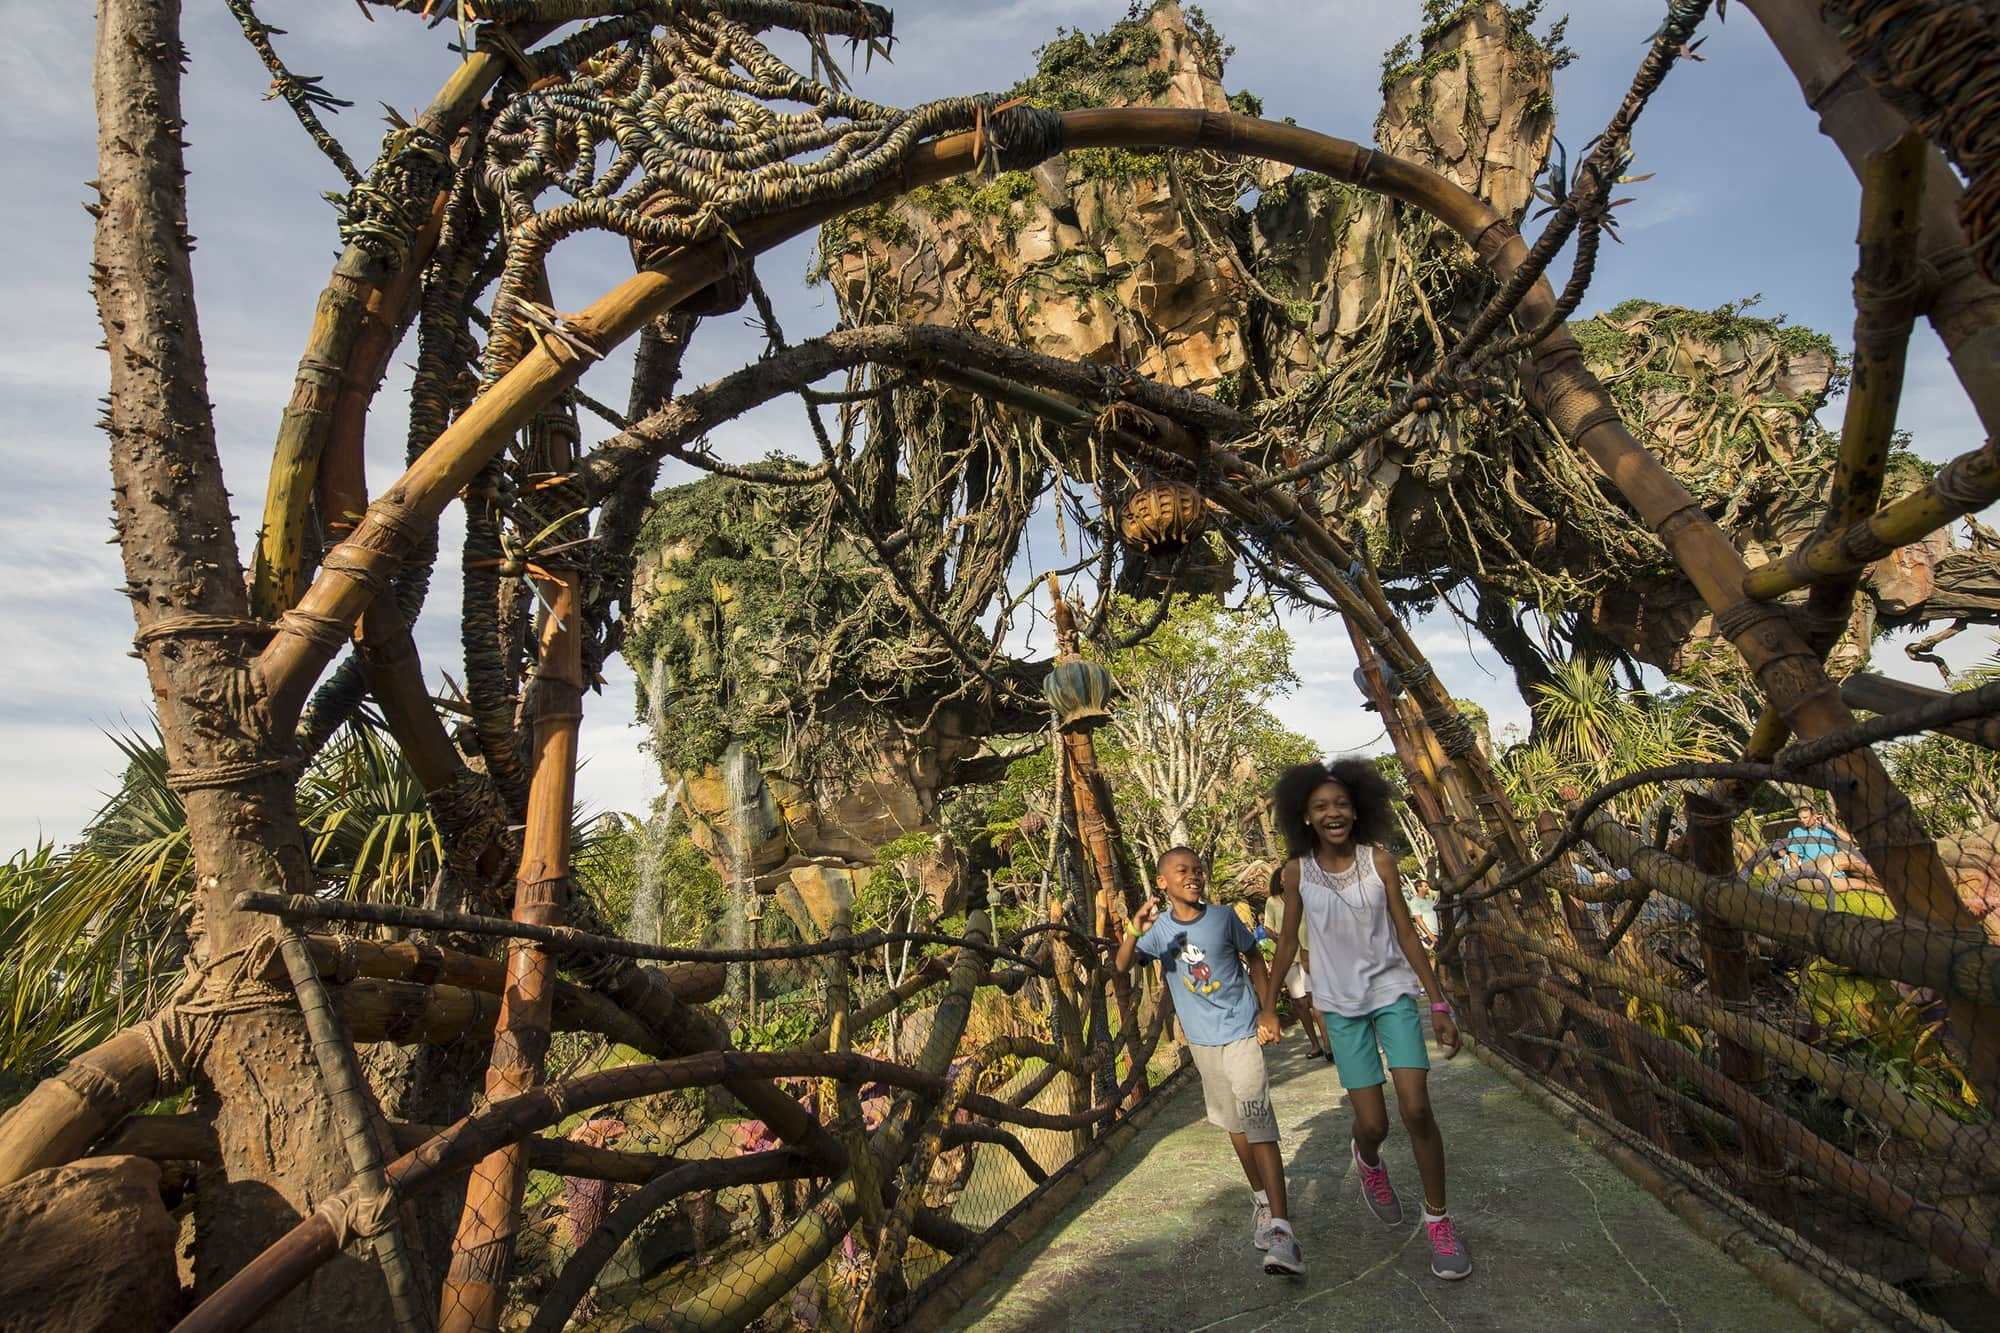 Teens exploring Pandora - The World of Avatar at Disney's Animal Kingdom ~ Disney World with Teens & Tweens